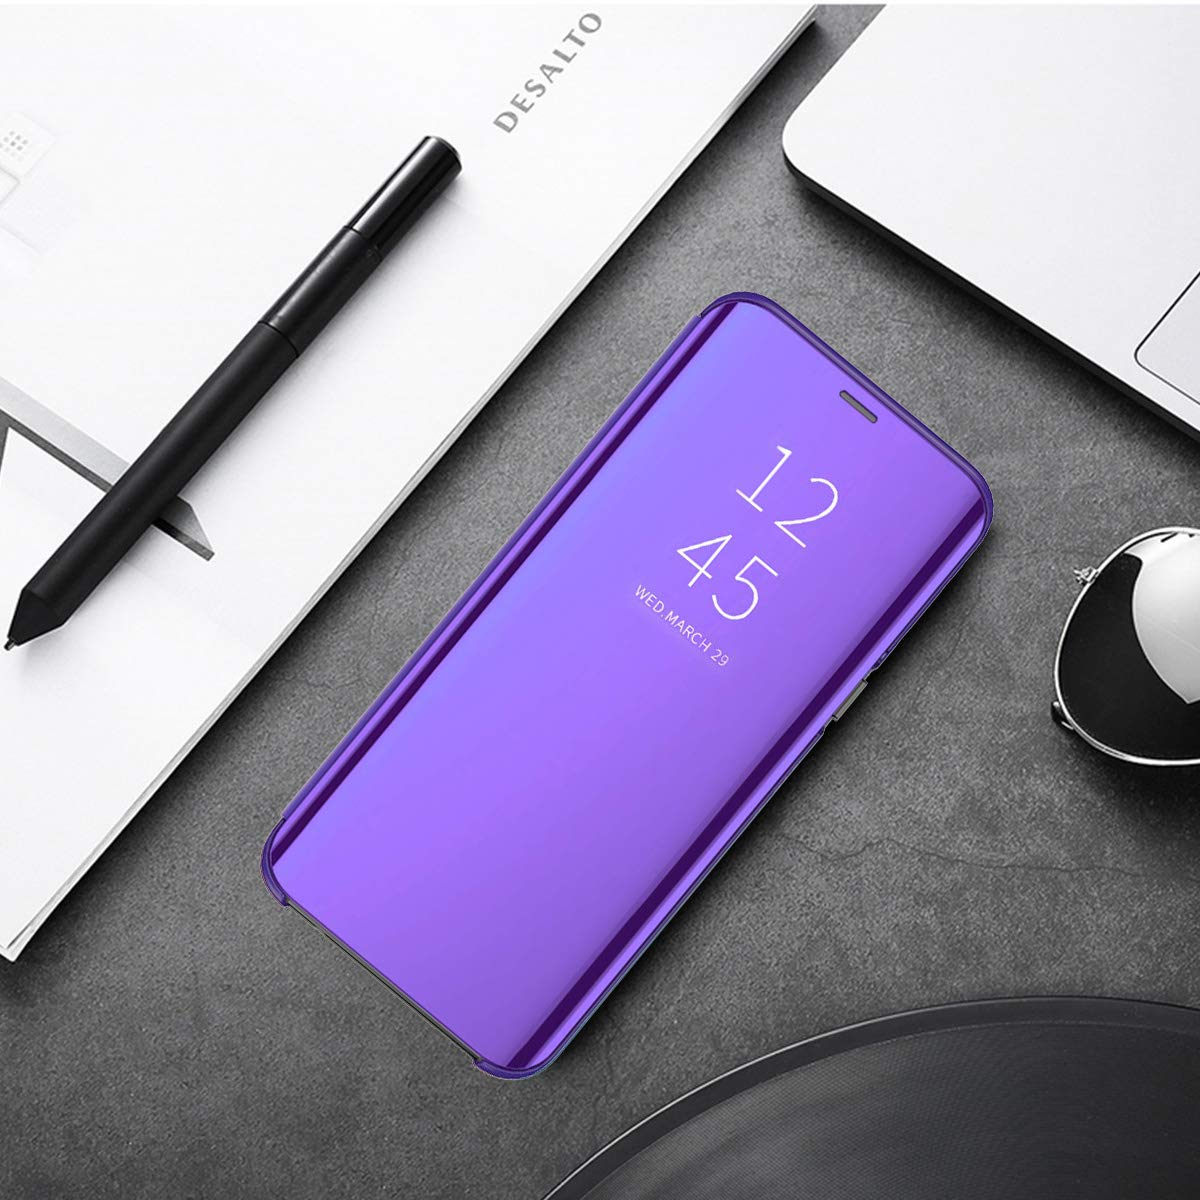 niter for Samsung Galaxy S10|S10 Plus|S10e|S10 5G Case Clear View Cover Slim Mirror Plating PC Full Body Protective Standing Cover